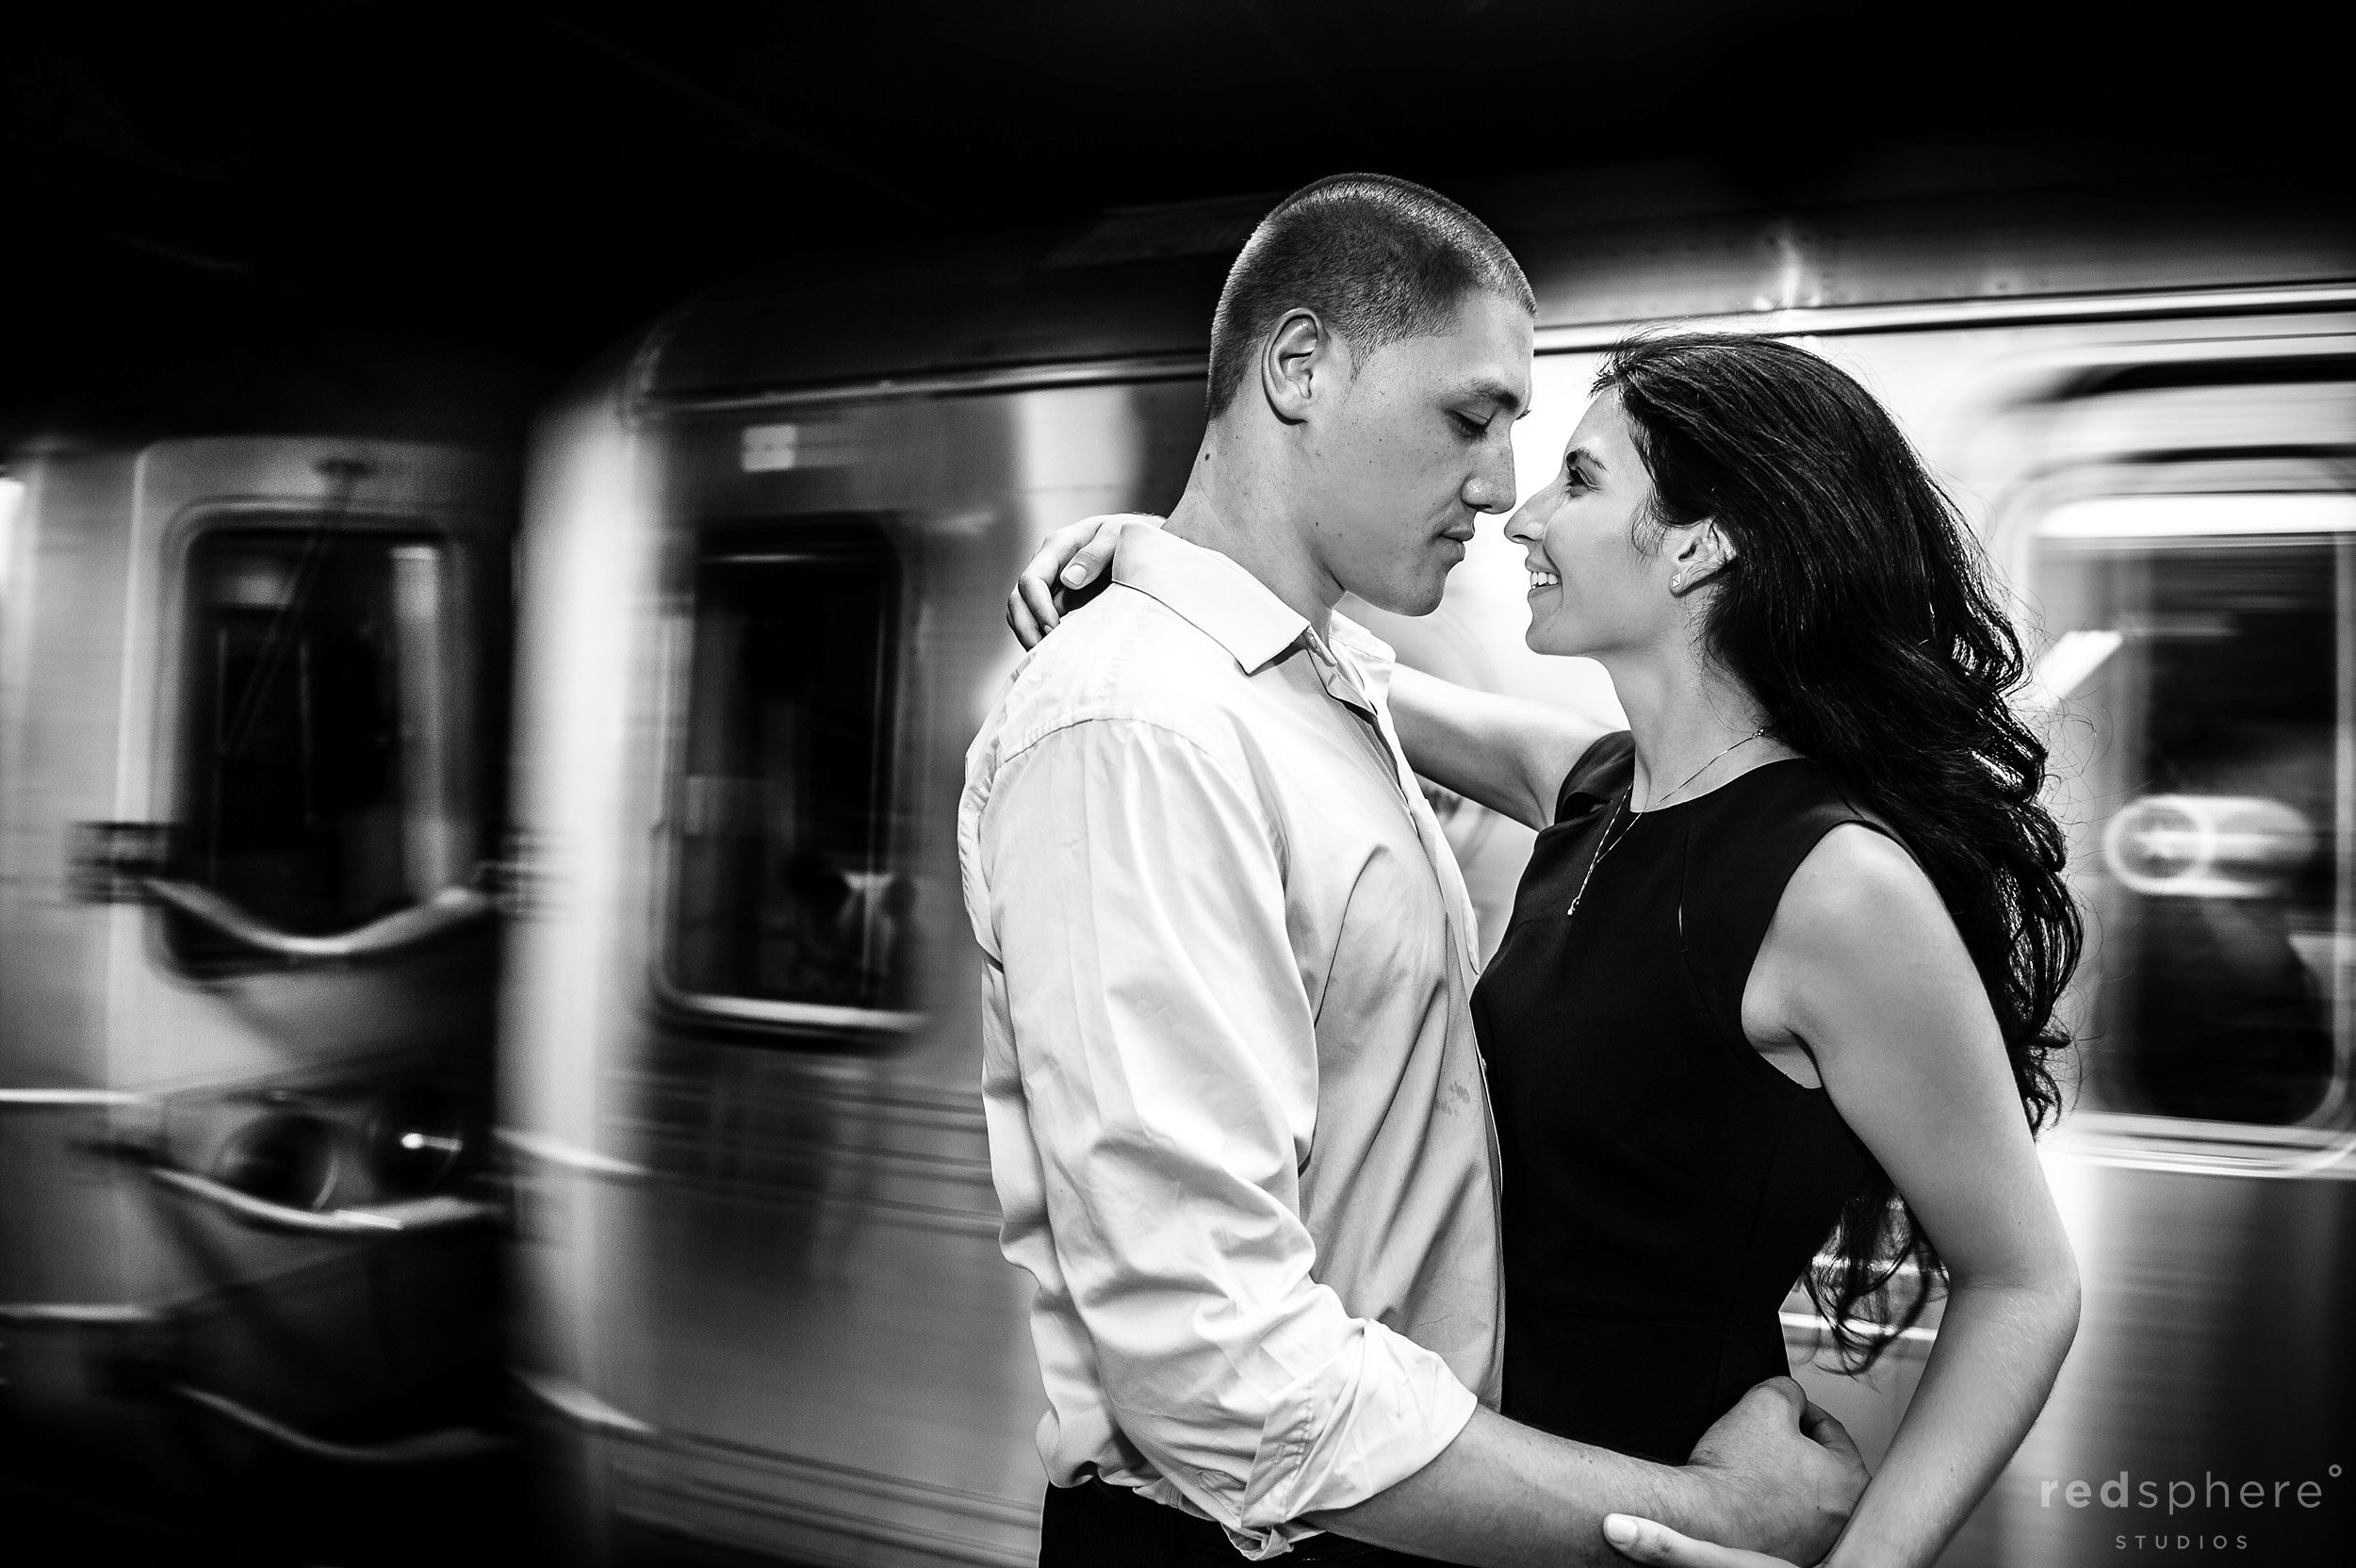 Couple Embracing While Subway Passes, Black and White Engagement